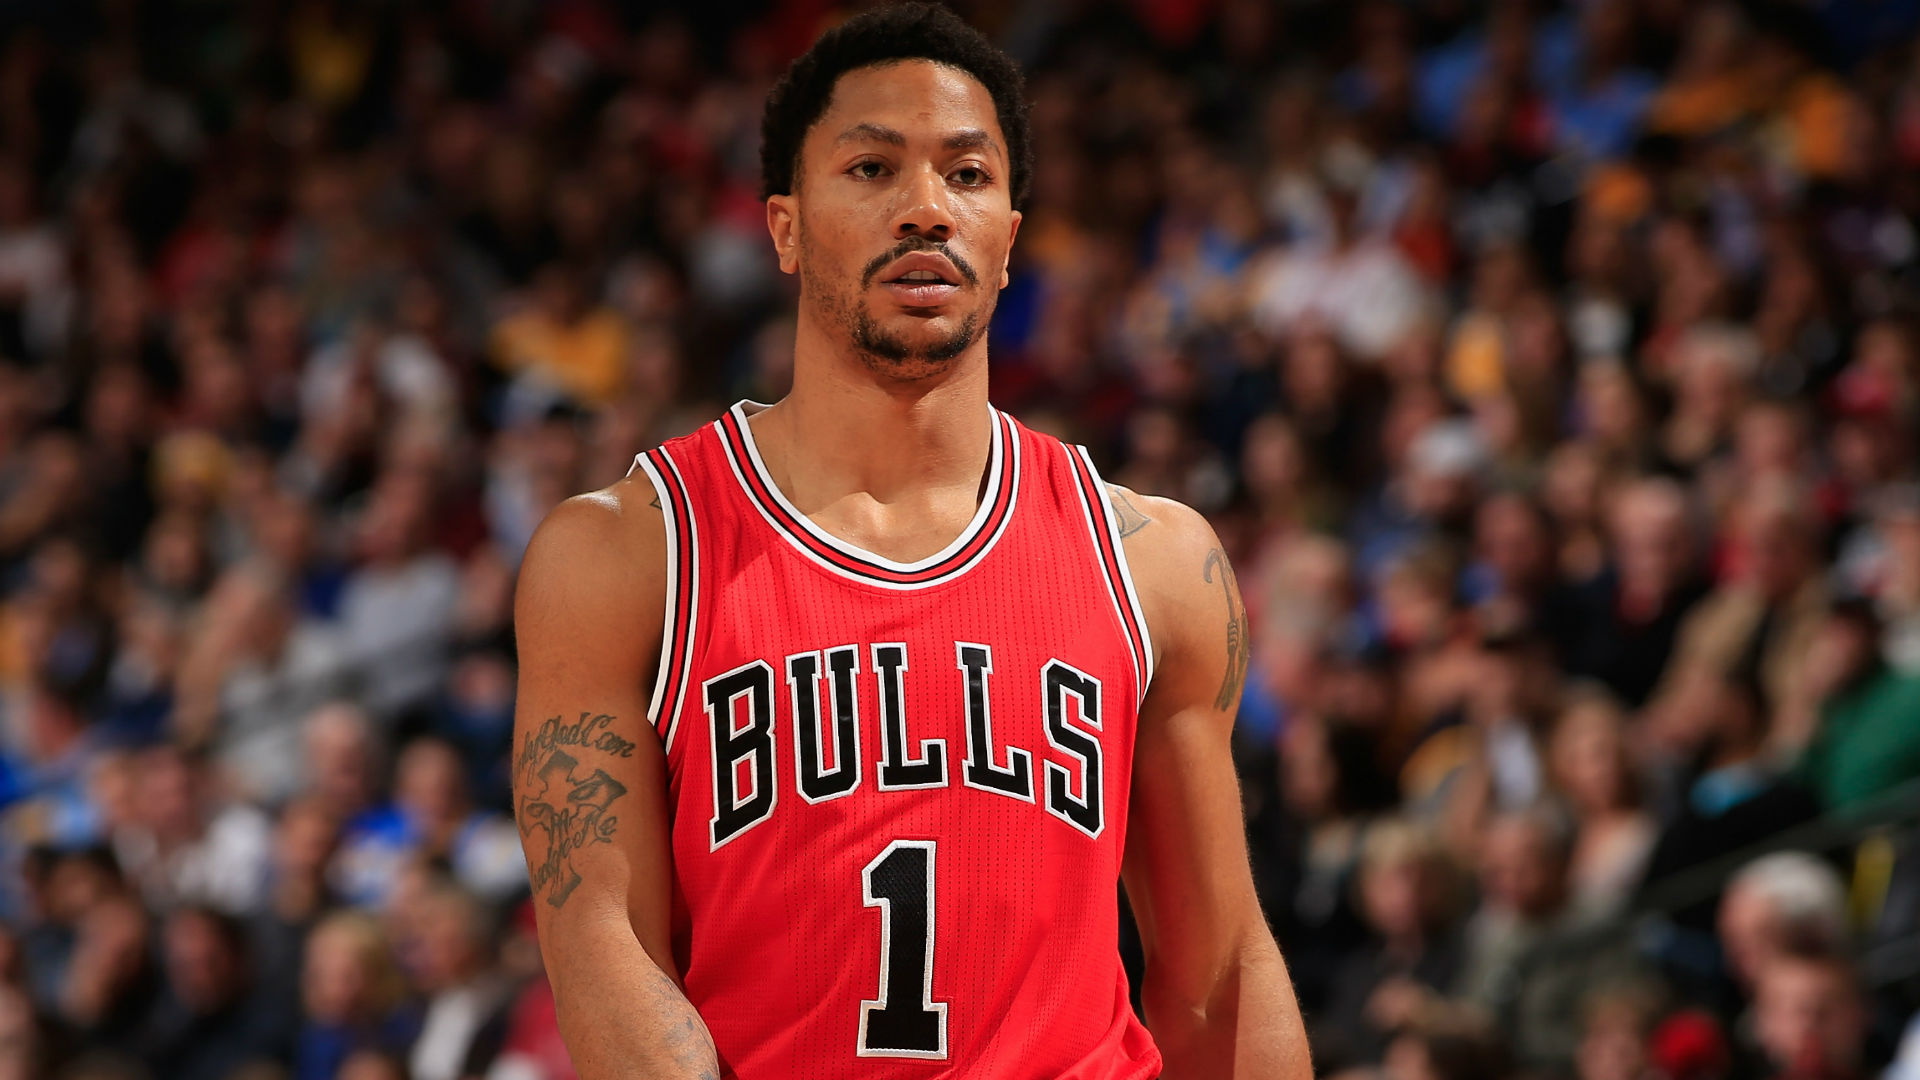 NBA betting lines and picks – Struggling Bulls host Spurs